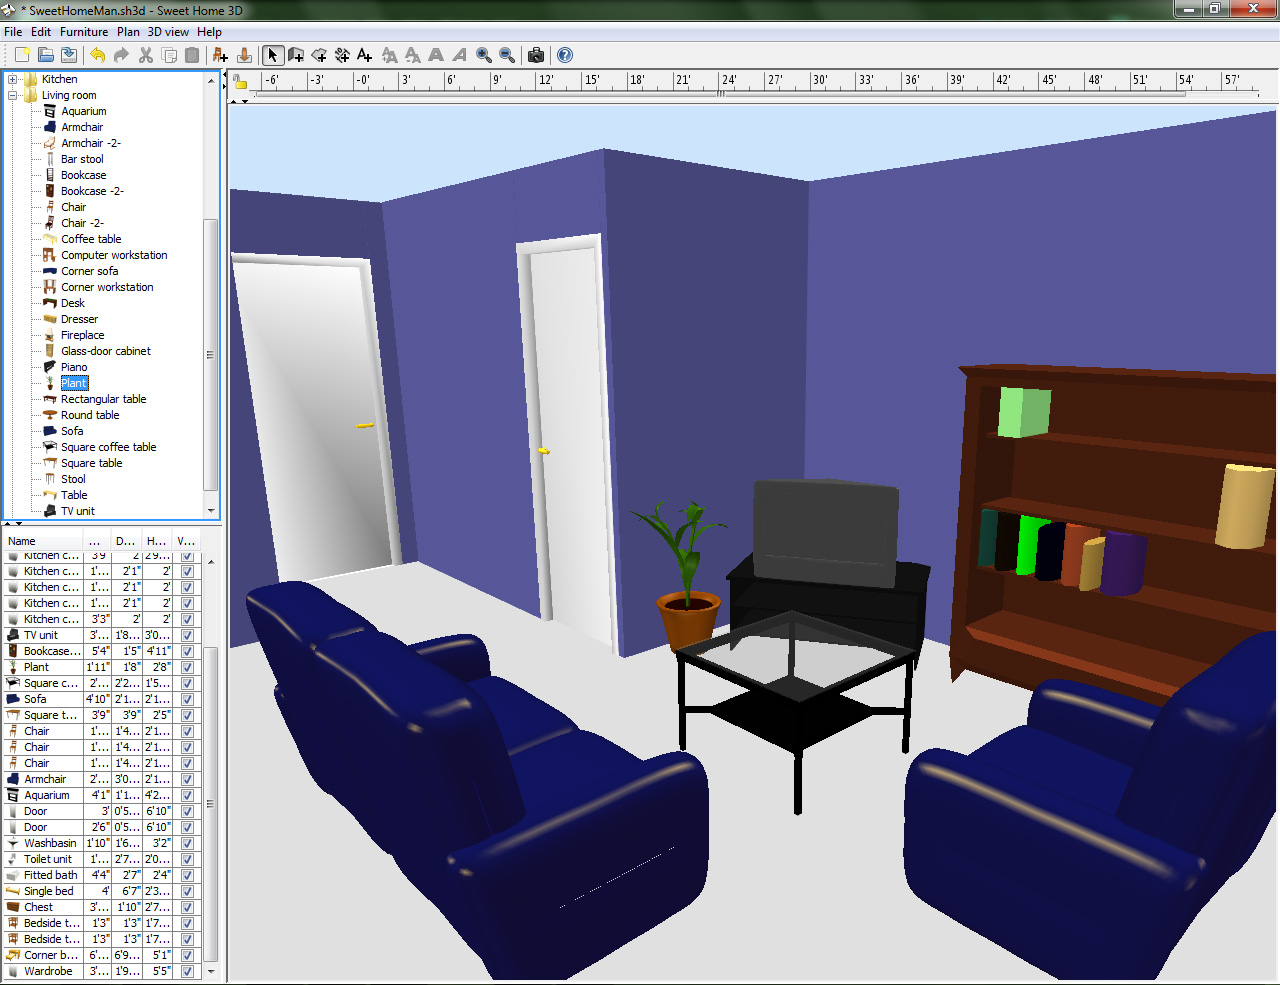 House interior design software Free 3d home design software for pc